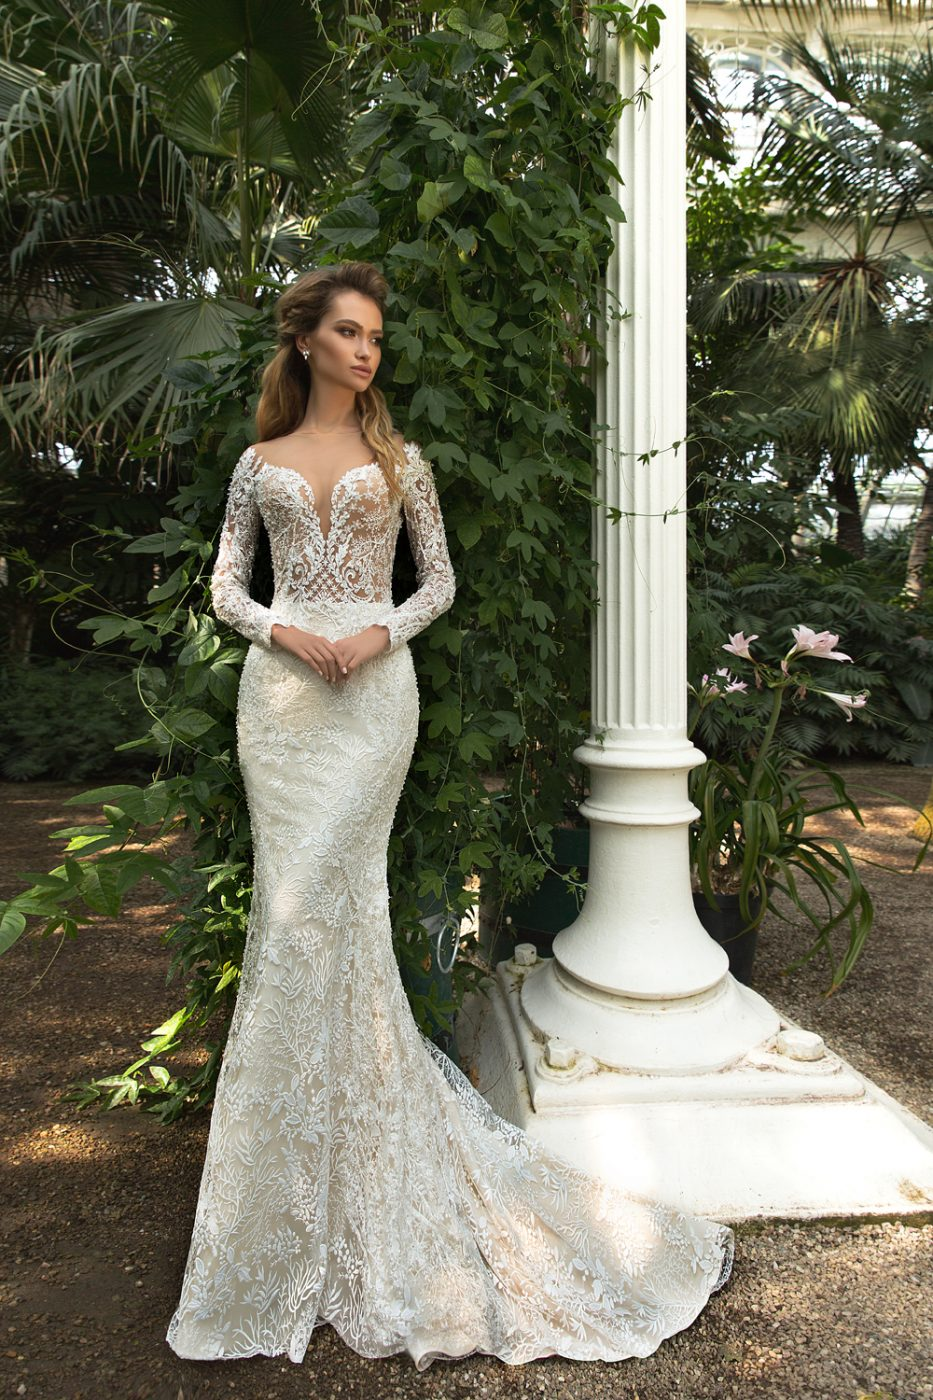 plunge neckline fit and flare wedding dress by Crystal Design Couture